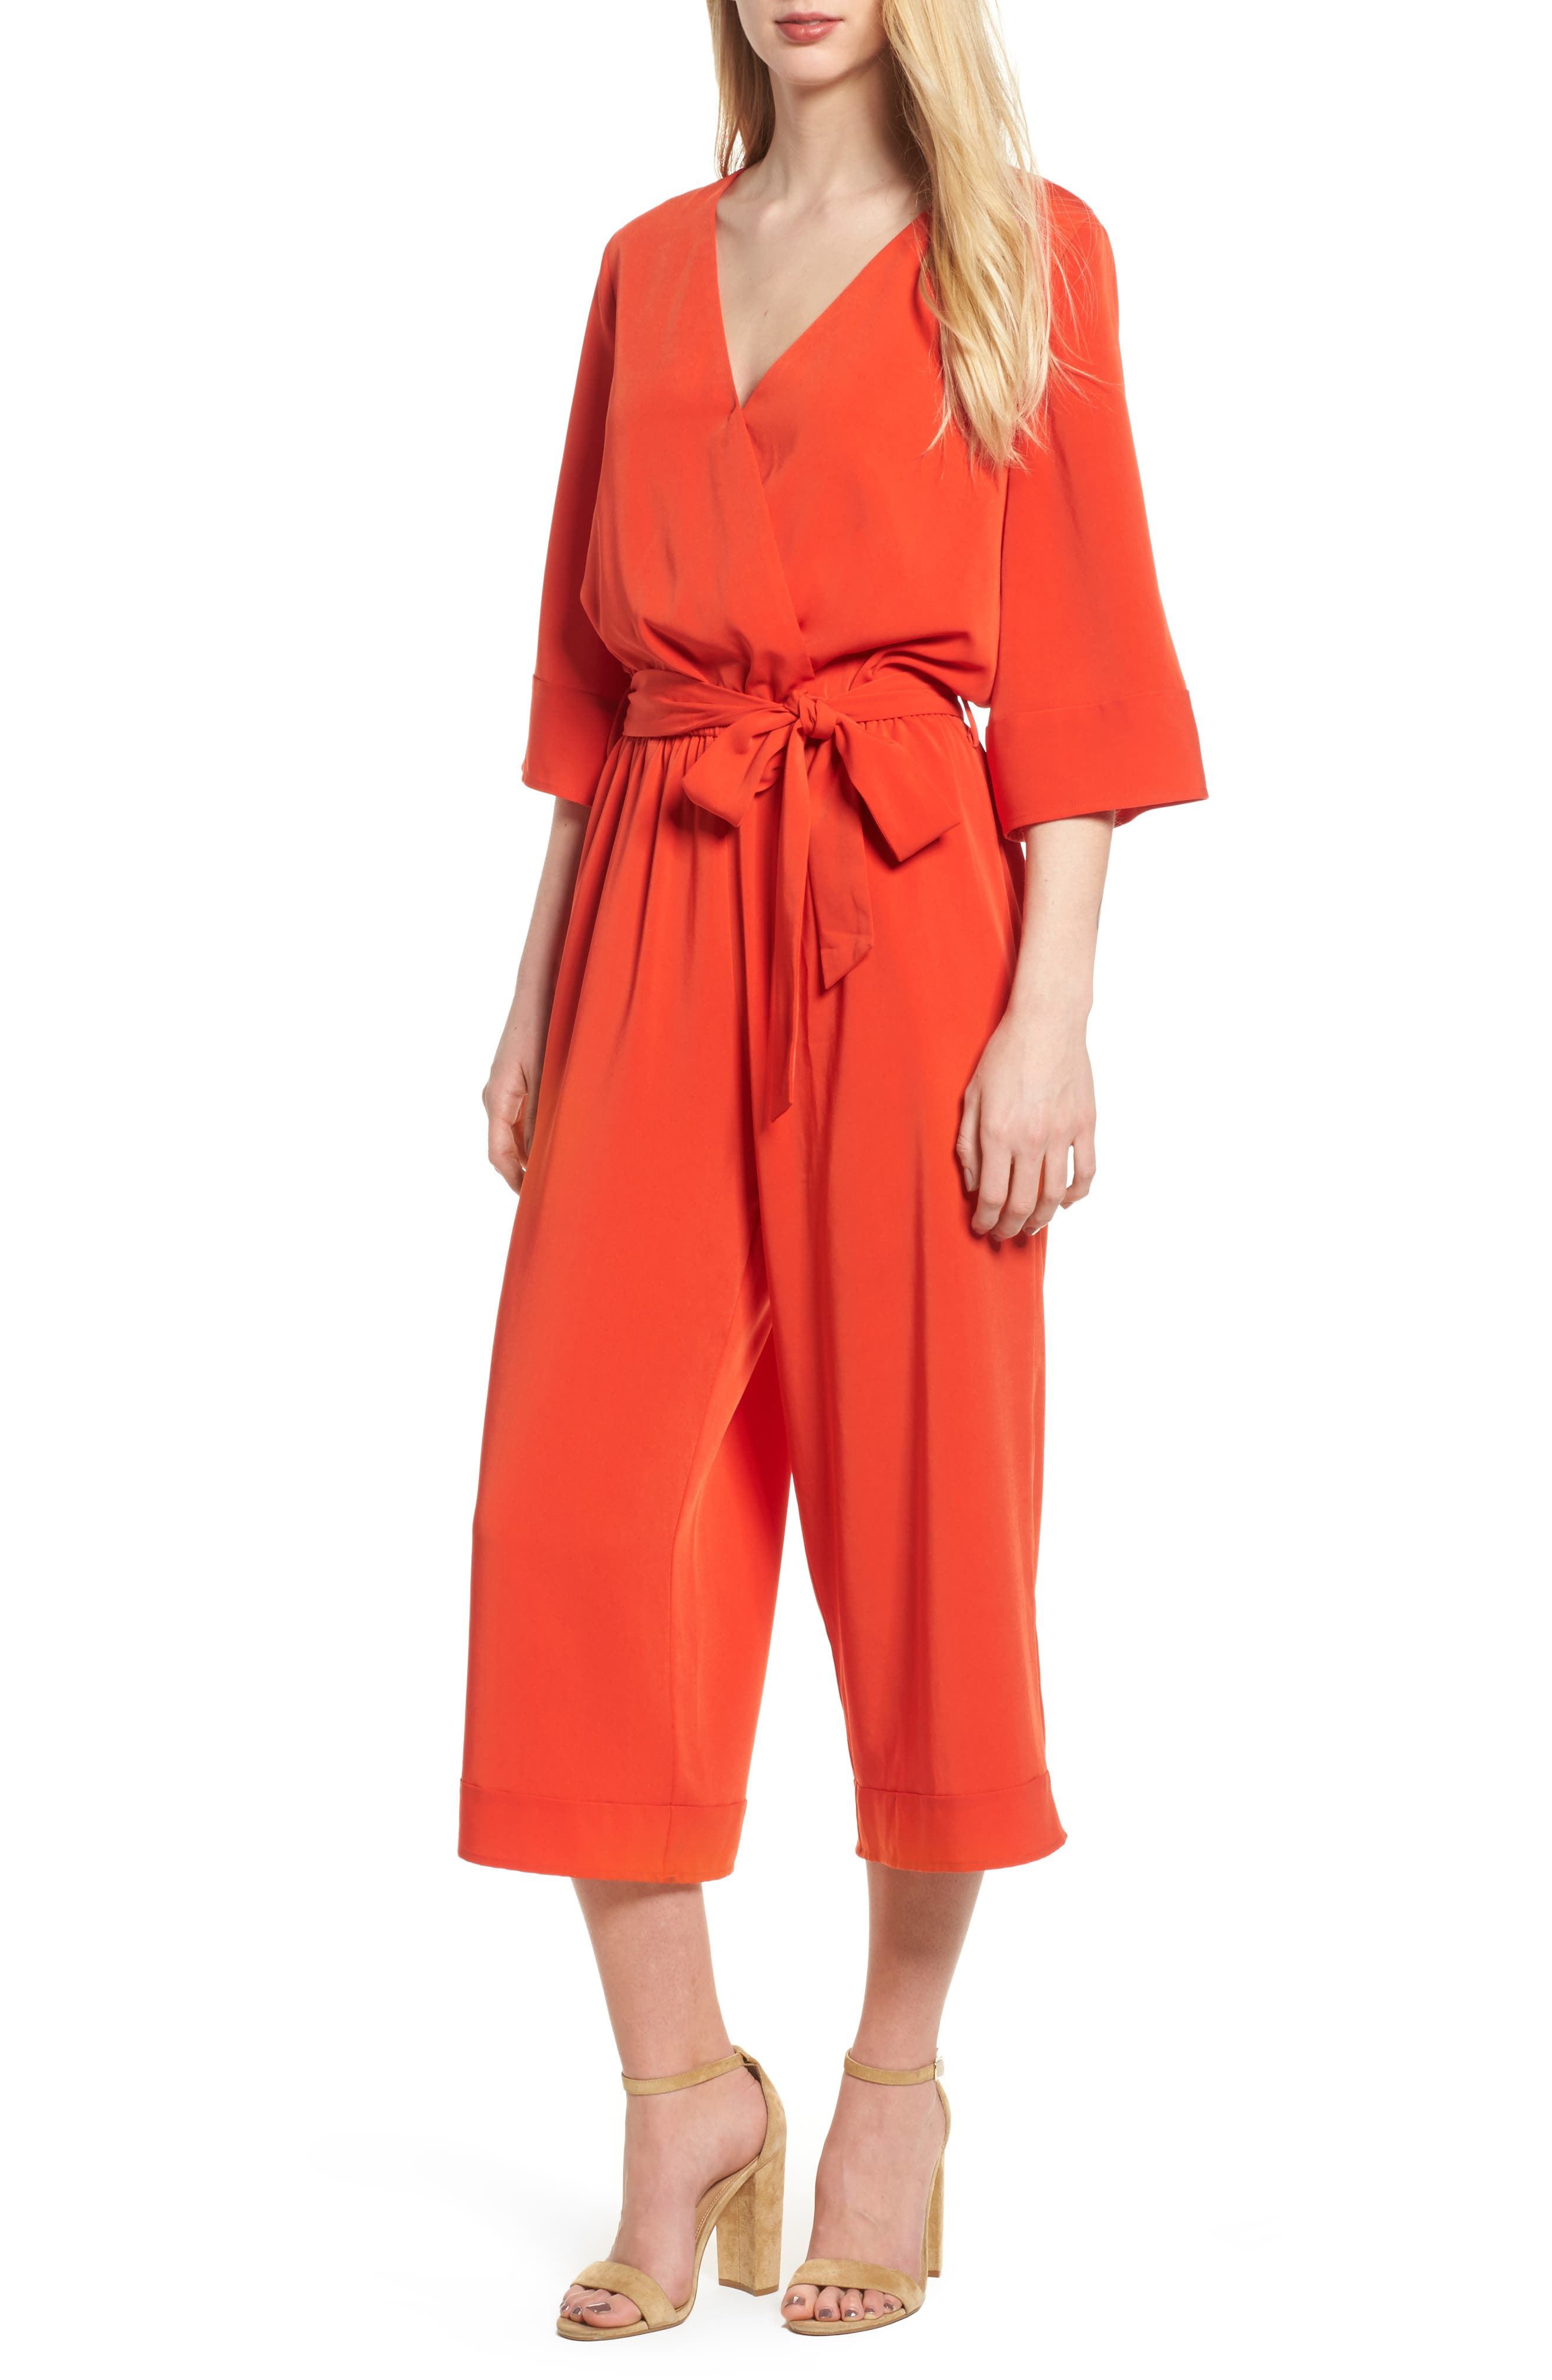 Bishop + Young Yacht Party Romper,                         Main,                         color, Poppy Pop